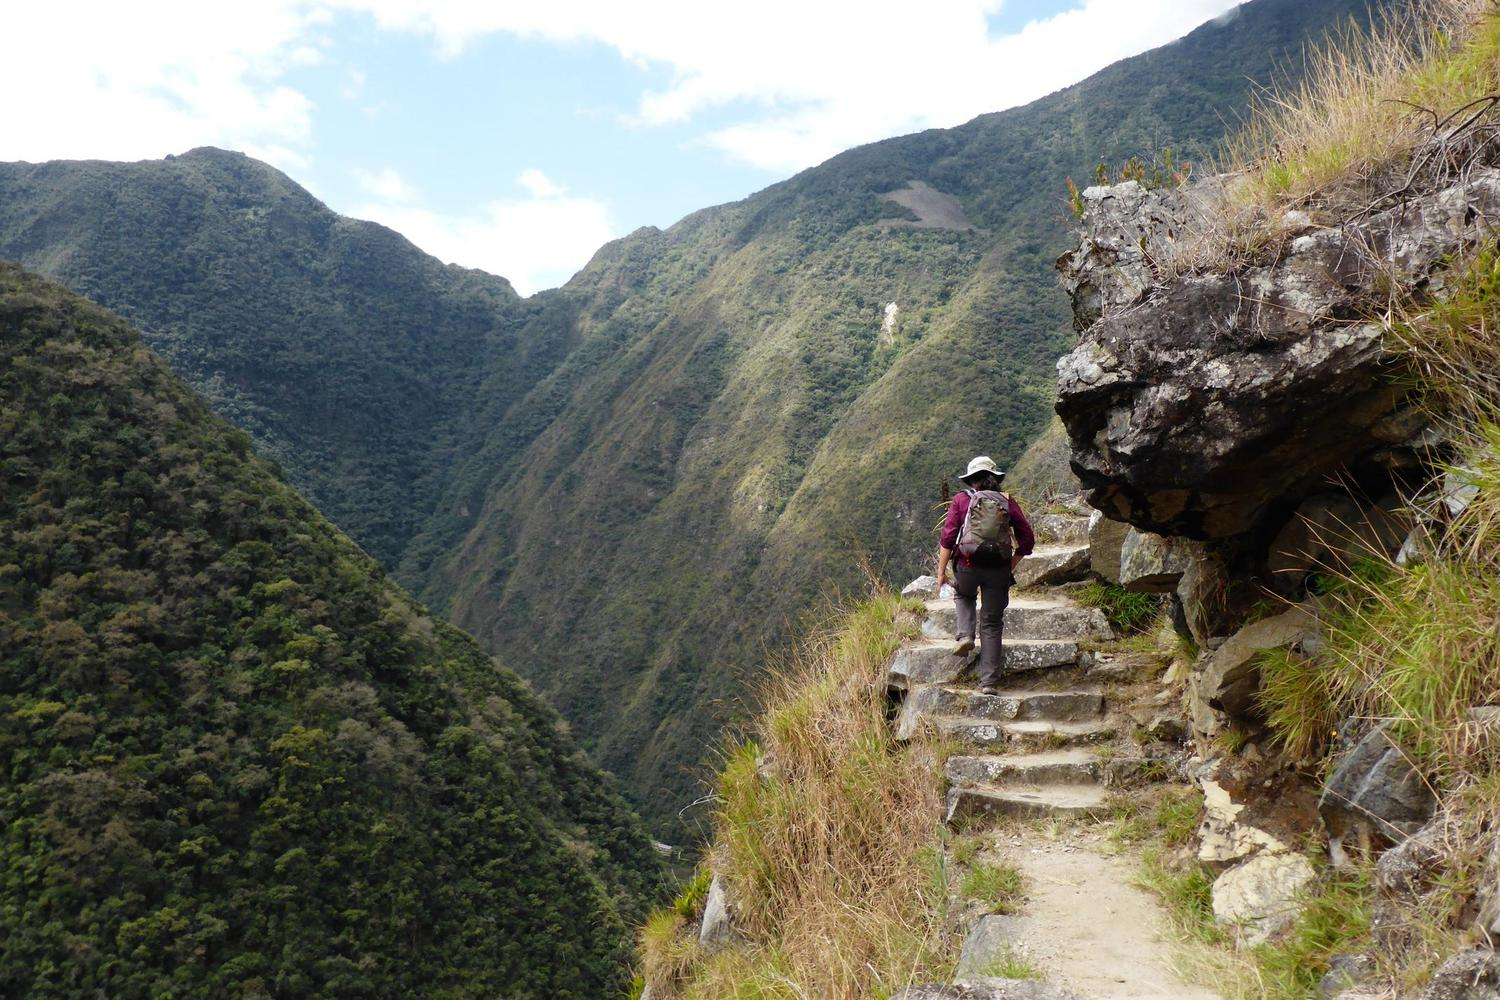 Walking the one-day Royal Inca trail to Machu Picchu